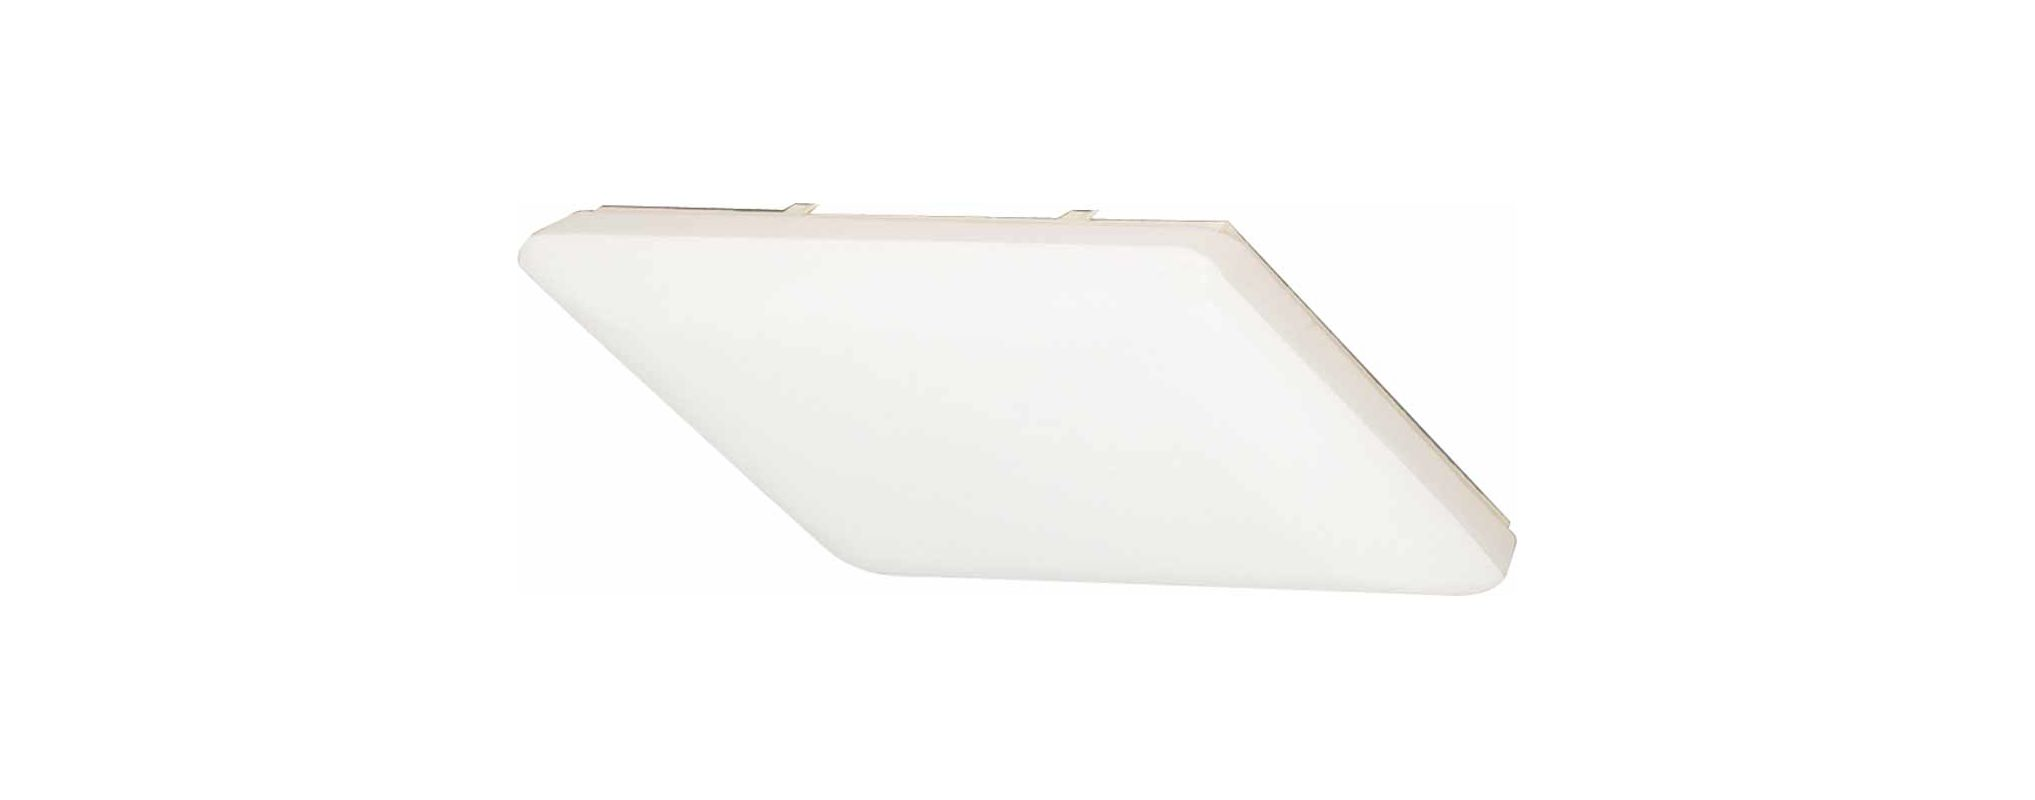 Volume Lighting V6572 2 Light Flush Mount Ceiling Fixture with Opal